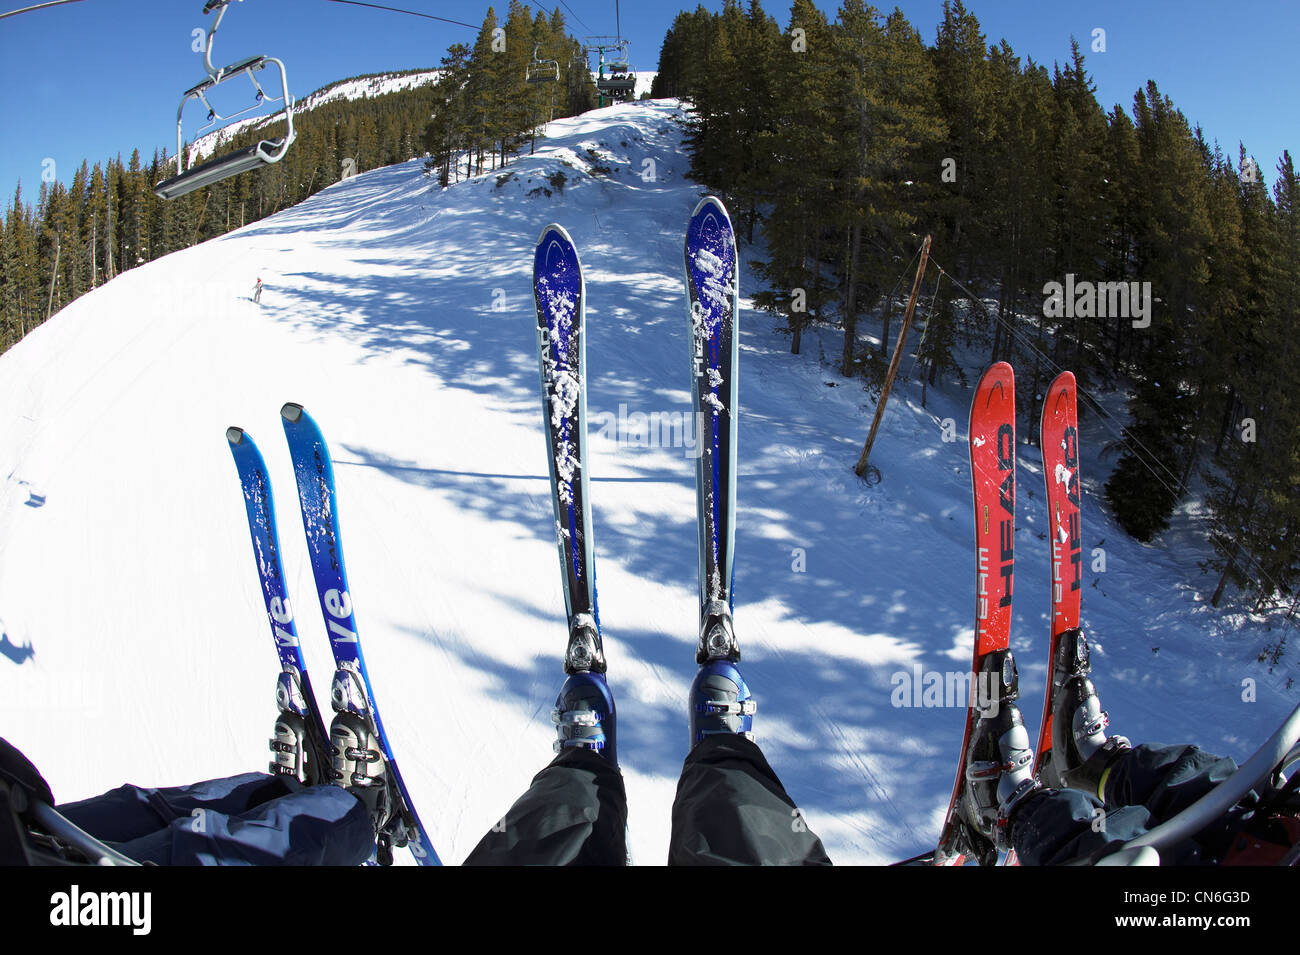 buy ski lift chair patio rocking looking down from with three pairs of skis in